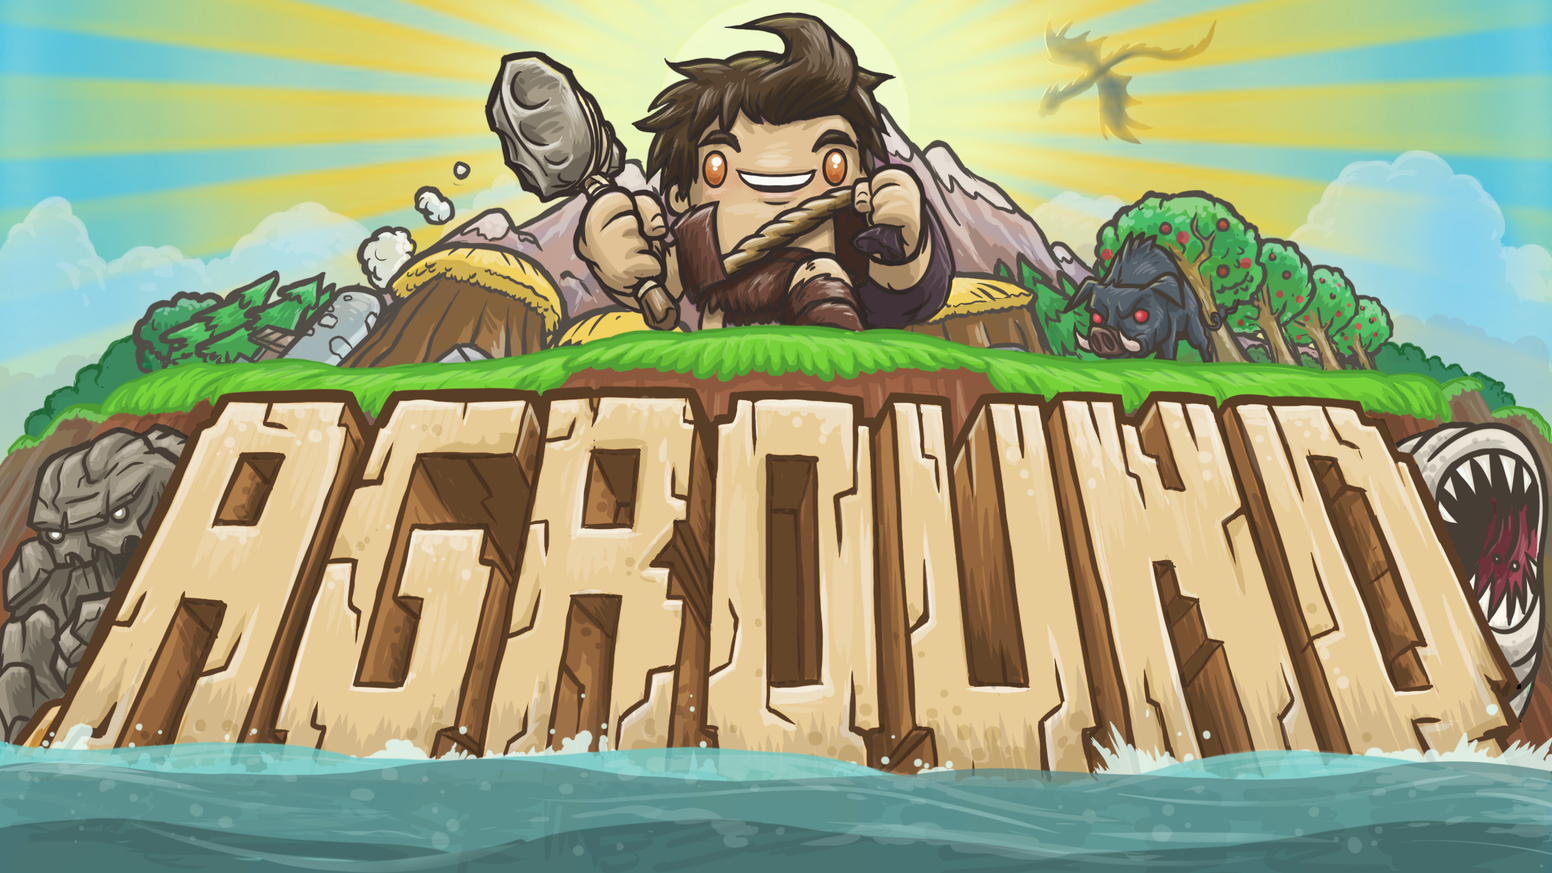 Your ship ran aground. Can you craft, mine and build your way to survival?